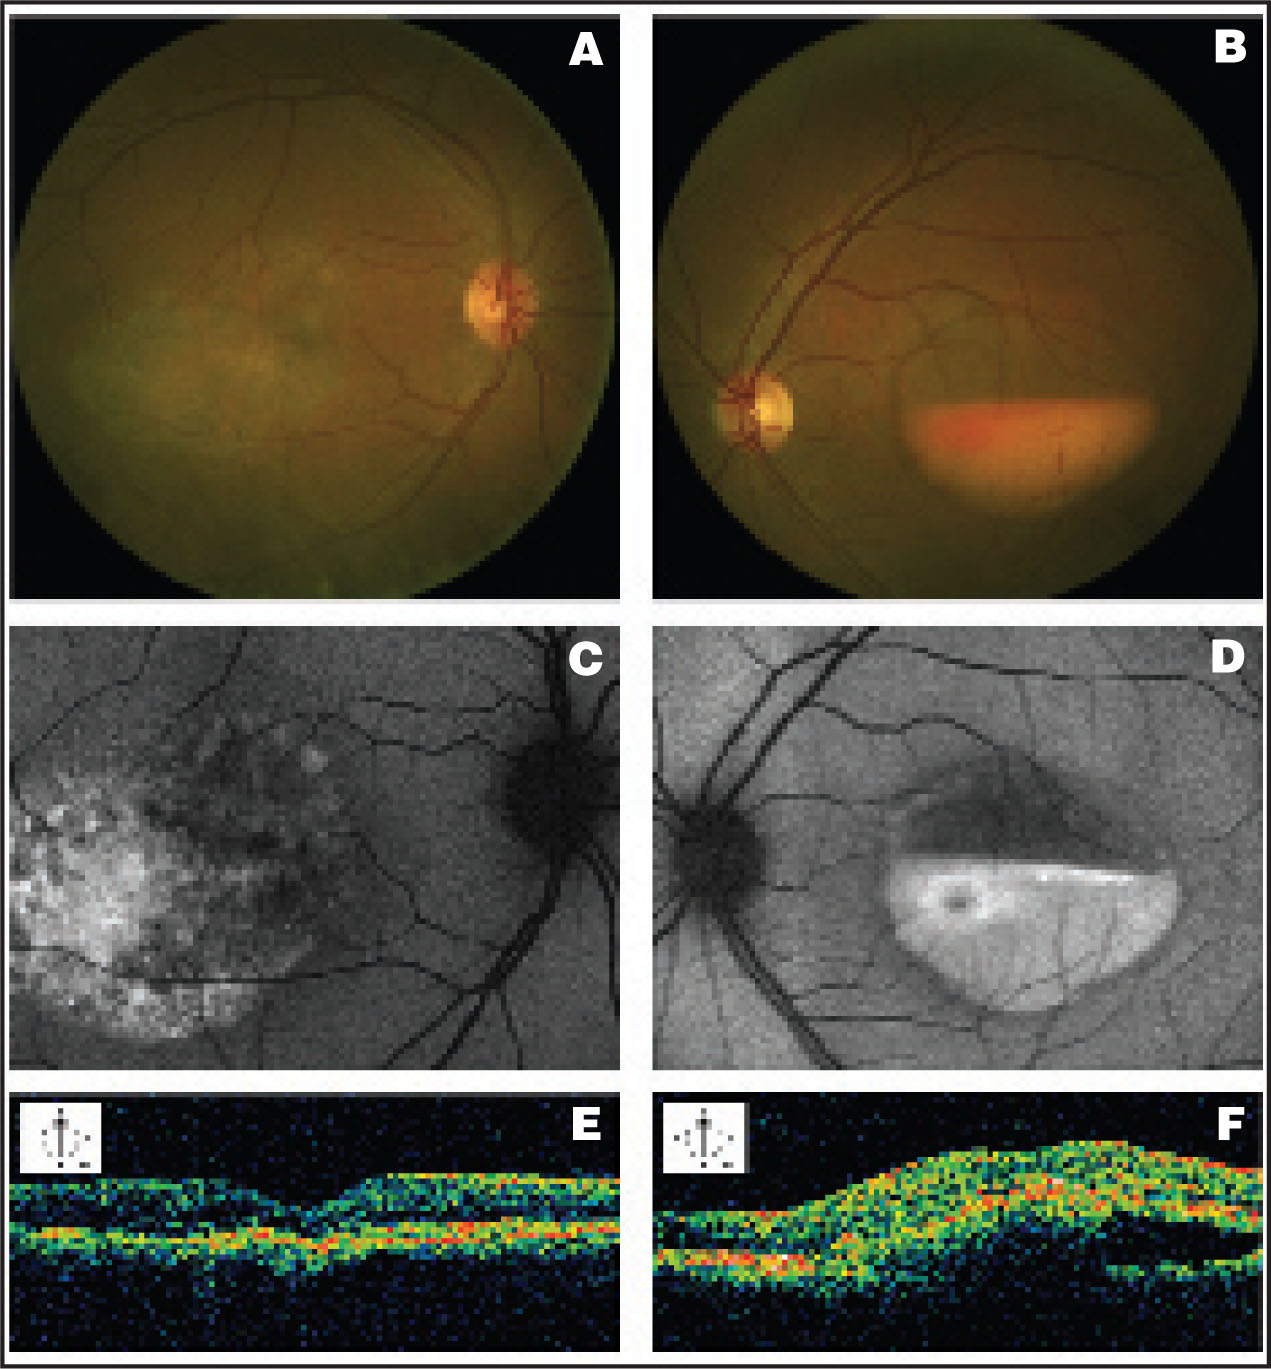 (A) Color Fundus Photographs Show the Retinal Pigment Epithelium (RPE) Changes Associated with a Large Inhomogeneous Dispersion of Vitelliform Material at the Macula of the Right Eye (RE), and (B) the Large Horizontal Sedimentation of Vitelliform Material at the Macula of the Left Eye (LE). (C and D) The Lipofuscinic Nature of the Macular Lesions Is Confirmed by Fundus Autofluorescence. (E) Optical Coherence Tomography Scan (OCT) Reveals in the Macular Region of the RE the Apparent Residual Material in the Center of the Lesion as a Hypereflective Deposit Stuck on the Outer Hypereflective Layer Associated with Variable Photoreceptors Layer/RPE Alterations and Atrophy (F) in the LE, Linear Vertical OCT Scan Shows, in the Macular Region, on the Superior Part, an Optically Empty Zone, Comprised Between 2 Slight Hypereflective Layers, And, on the Inferior Part of the Lesion, the Sediment Material, Which Appears as a Dense Hypereflective Structure. Interestingly, OCT Scan Reveals the Abrupt Transition Between the Empty Area and the Vitelliform Material that Gravitated Inferiorly in the Subretinal Space, and the Neuro-Sensory Retina Maintaining Normal Thickness and Structure.